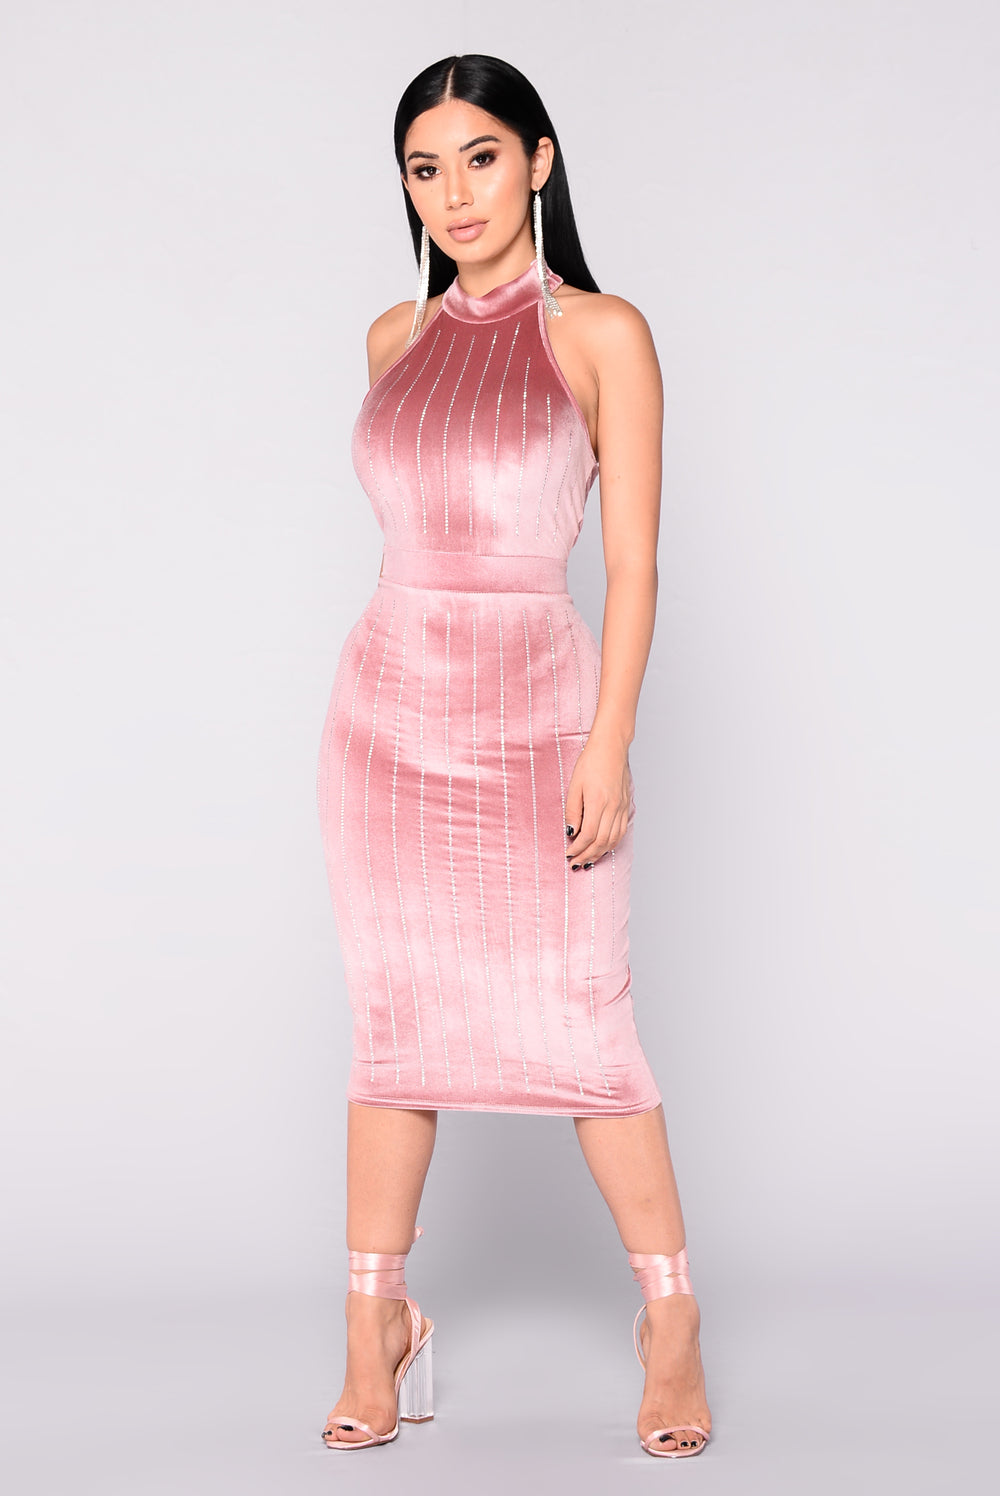 velvet dress blush instant nova dresses